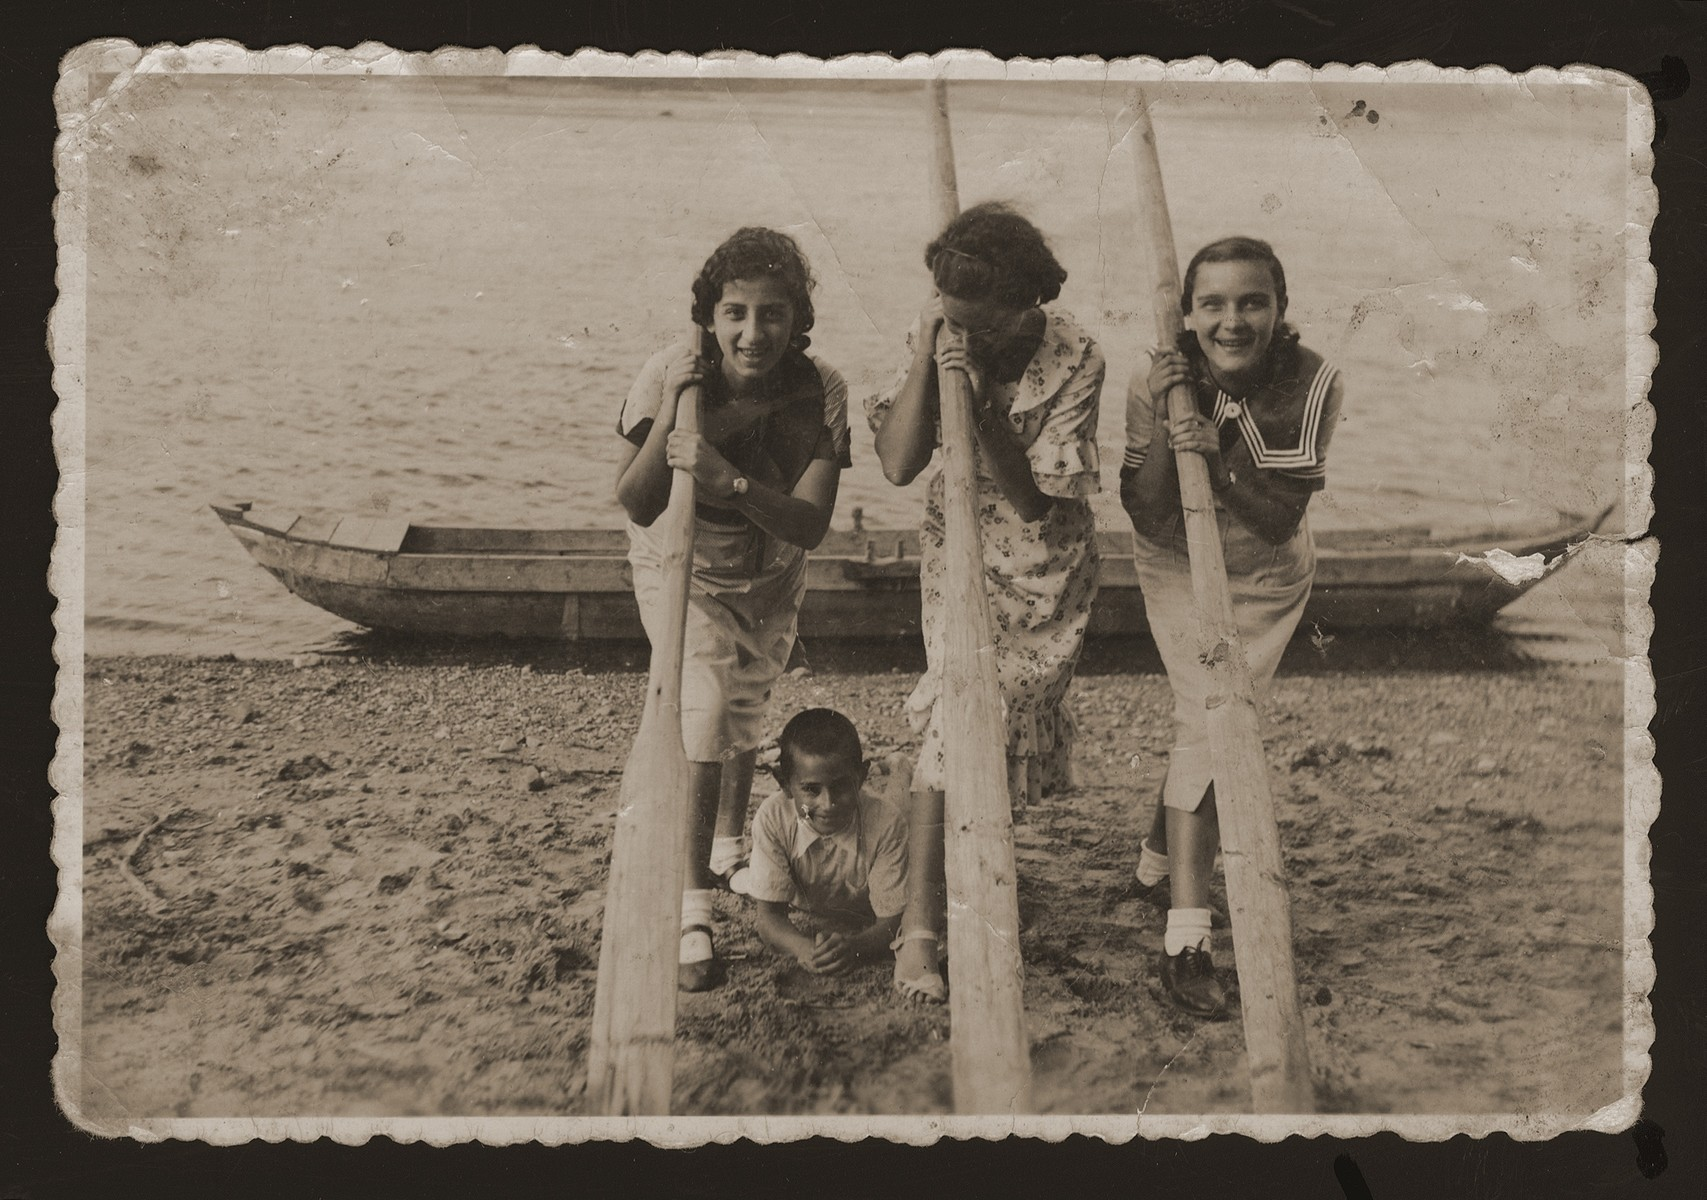 Three Jewish friends pose with paddles on the banks of the Nemunas River in the village of Katcherine near Kaunas.    Pictured from left to right are: unknown, Dita Katz and Celia Rom.  Beneath them is Zvi Katz, Dita's brother.  Neither of Dita's companions survived the war.